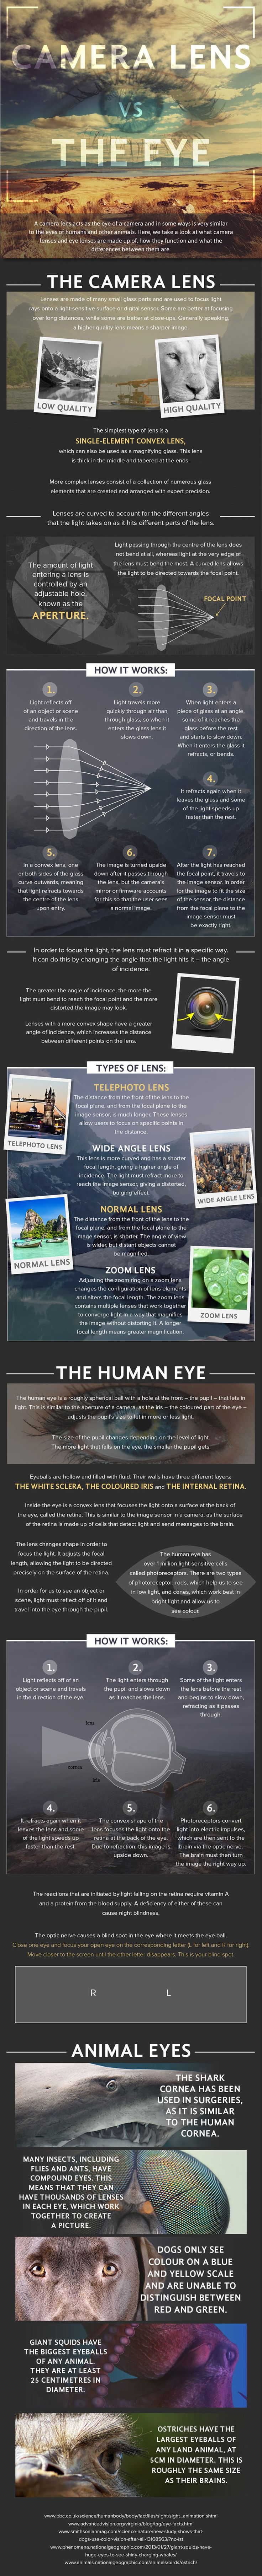 What are the differences between the human eye and the lens on your camera? This #photography cheat sheet makes an in-depth comparison...